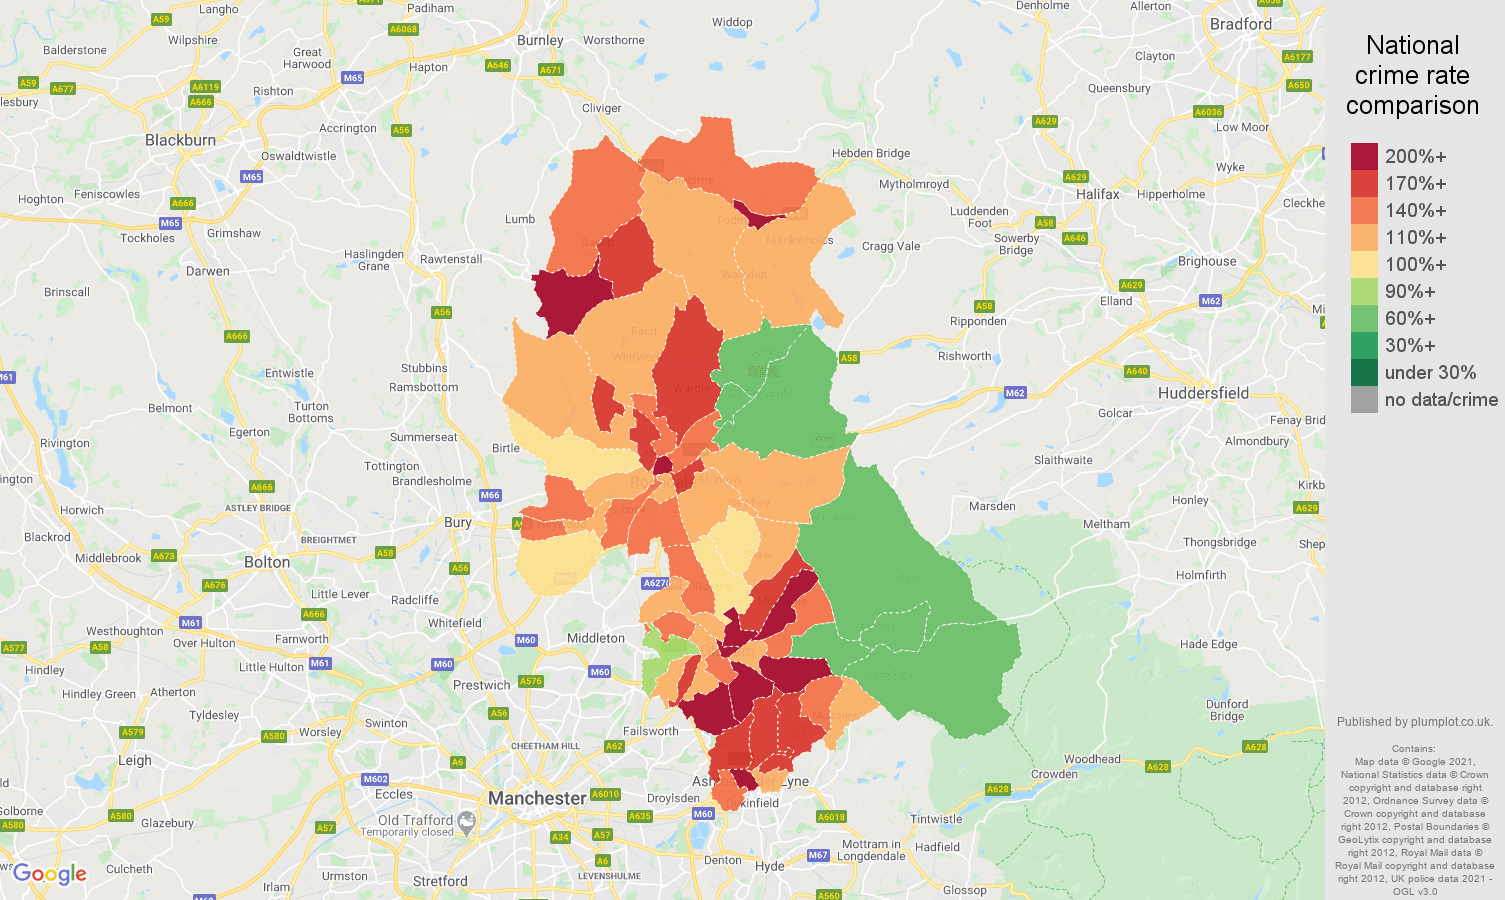 Oldham violent crime rate comparison map